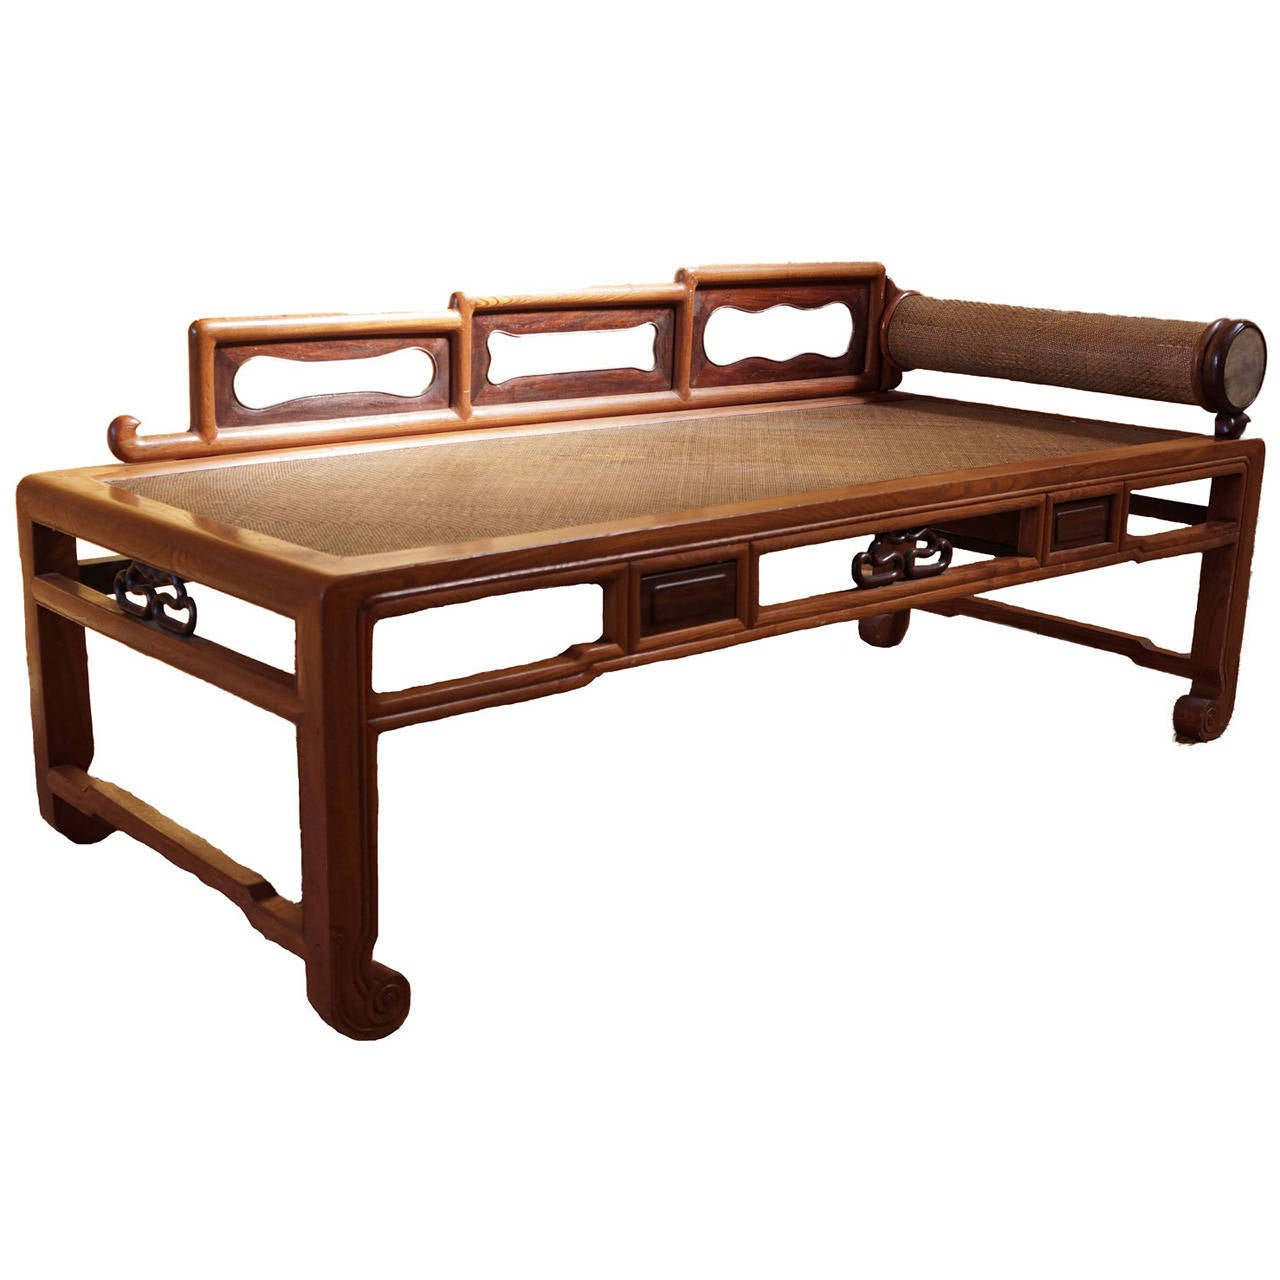 Chinese antique opium bed at 1stdibs for China furniture bed